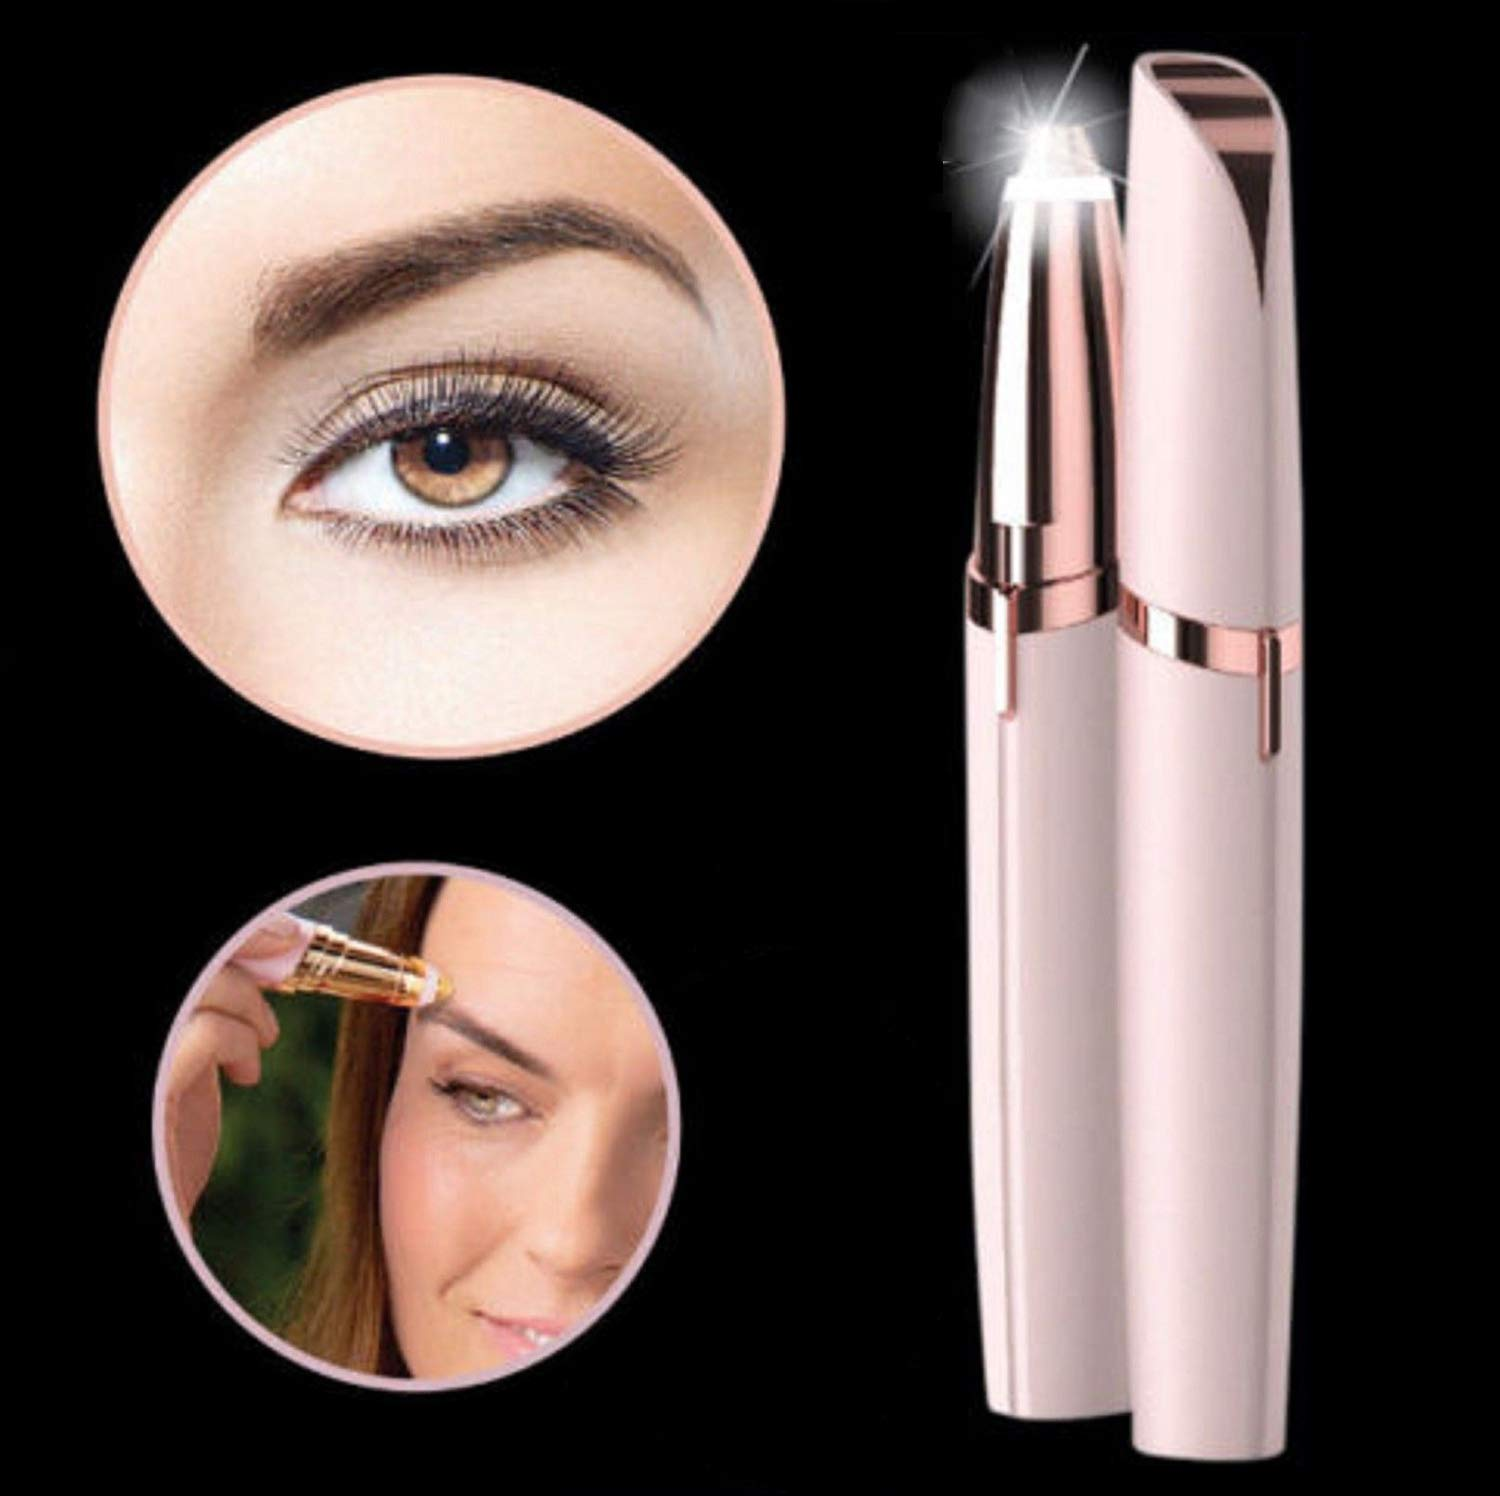 Eyebrow Trimmer As Seen On TV, Flawlessly Brows Eyebrow Remover for Women, Blush